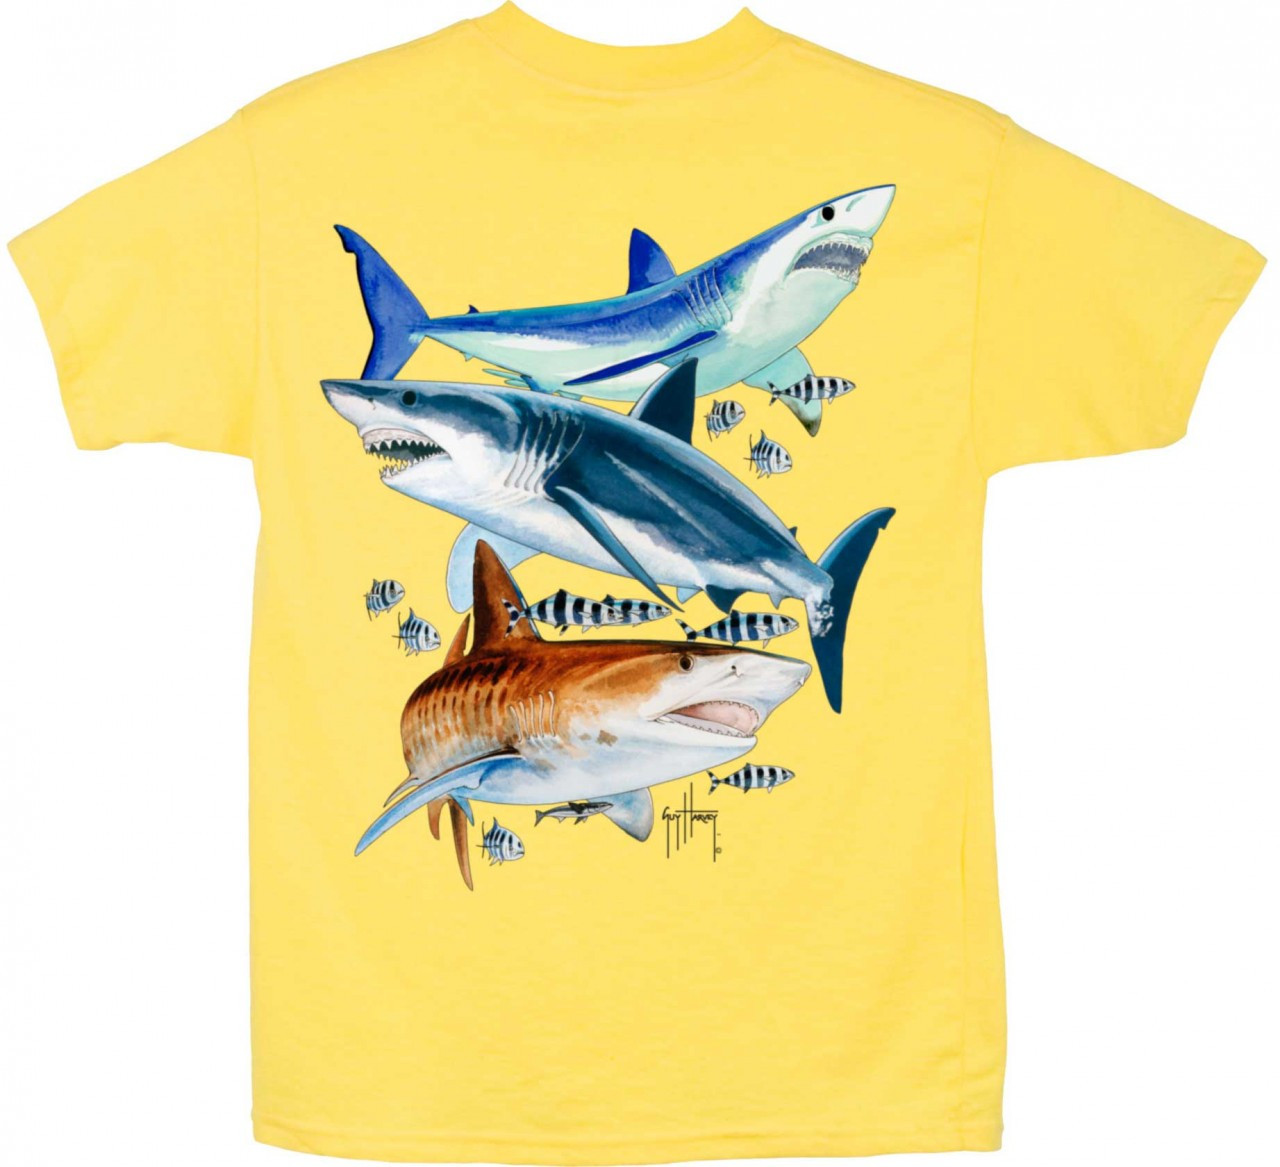 7658e741 Guy Harvey 3 Sharks Boys Tee Shirt in Yellow, Royal Blue, Red or Lime.  $15.00. See 4 more pictures